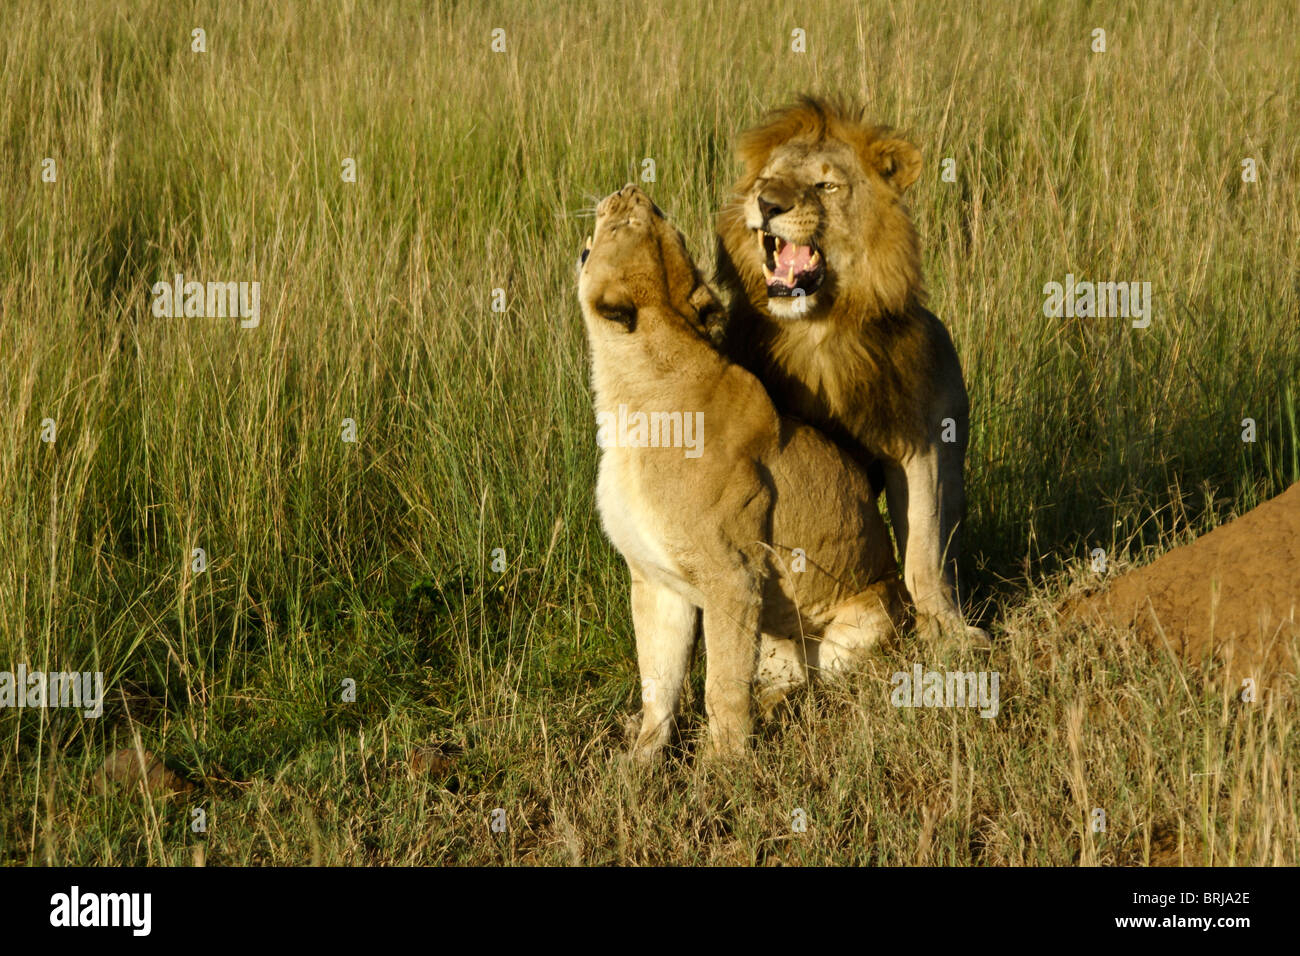 Mating pair of lions, Masai Mara, Kenya - Stock Image